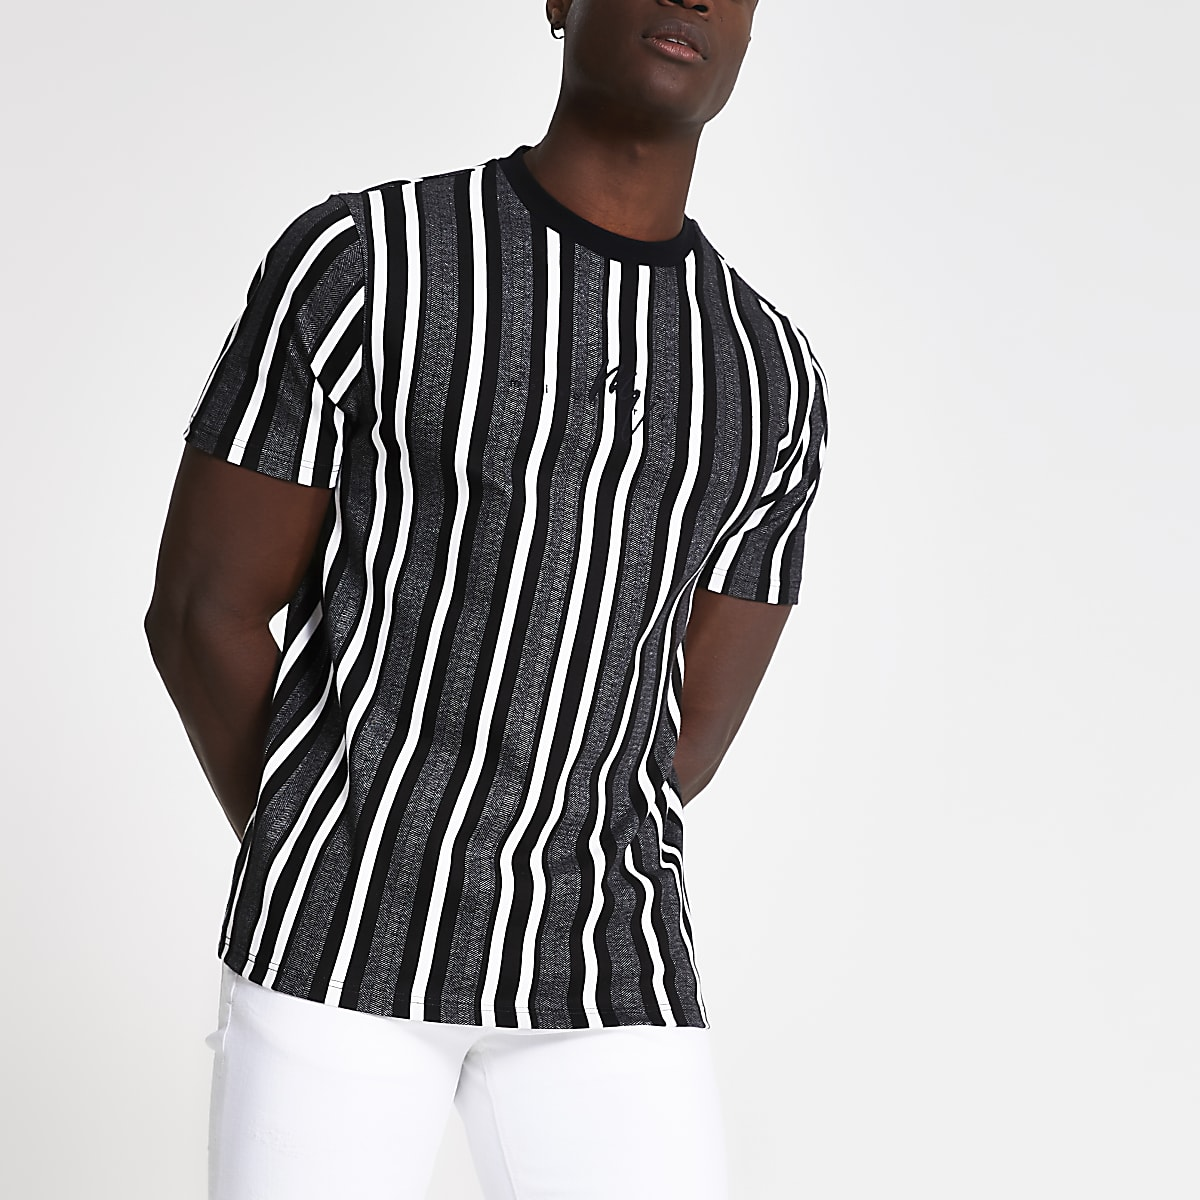 Maison Riviera grey stripe T-shirt